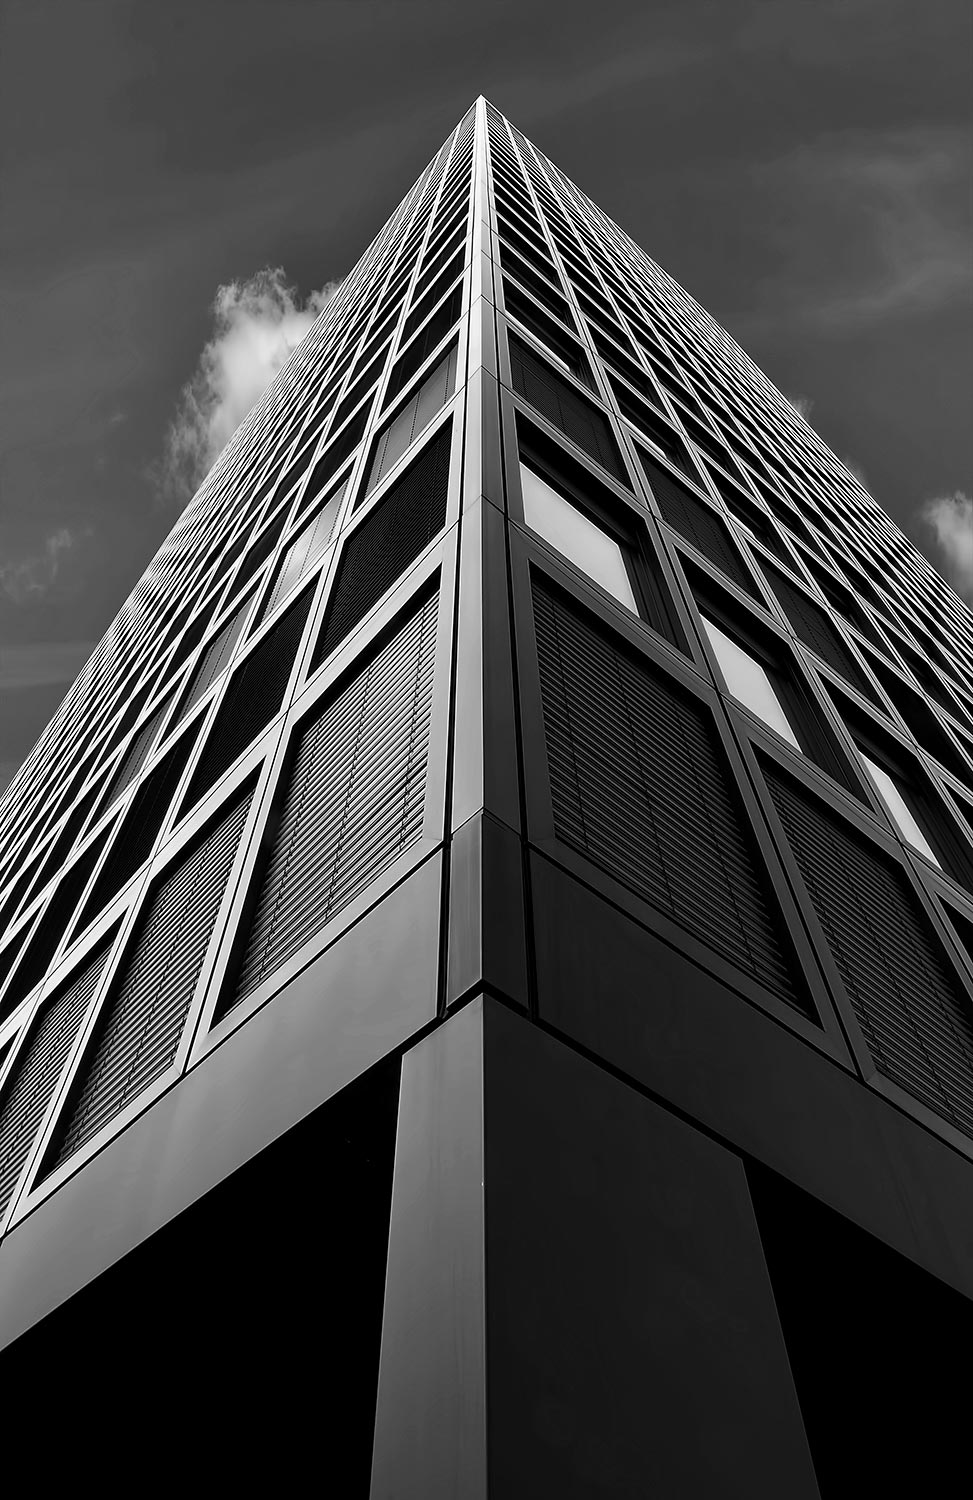 Monochromatic Architectural Visualization